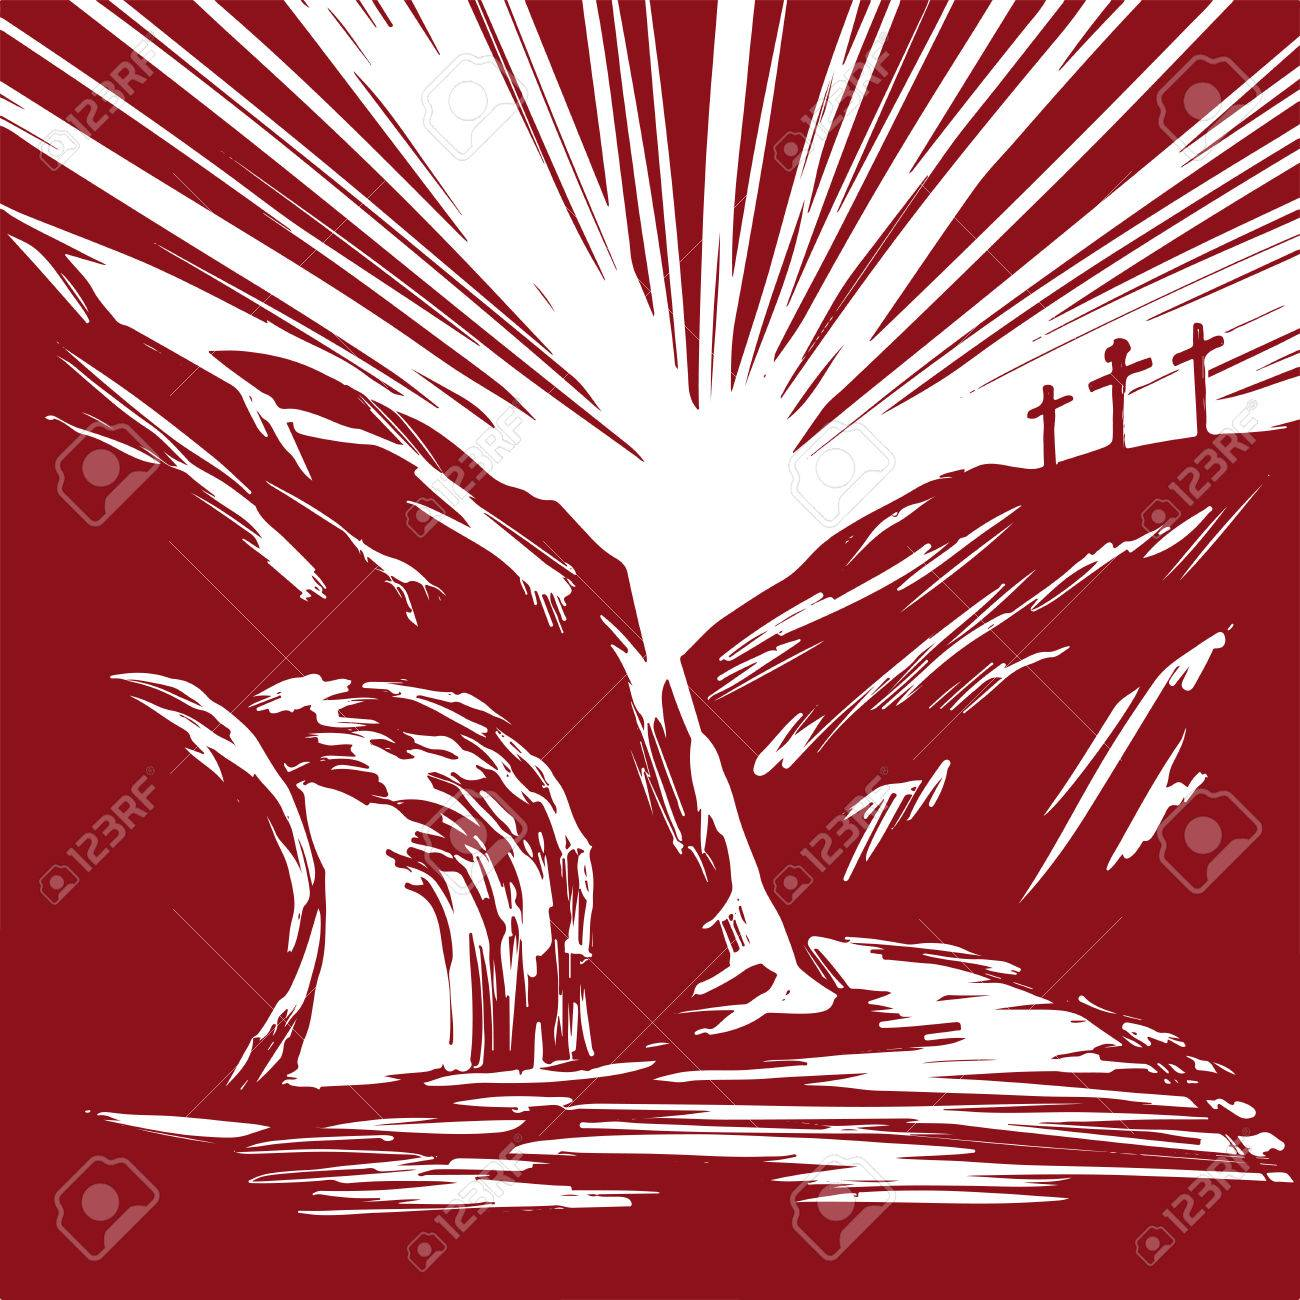 Easter Jesus Christ rose from the dead. Sunday morning. Dawn. The empty tomb in the background of the crucifixion. symbol of Christianity hand drawn vector illustration sketch - 72889182